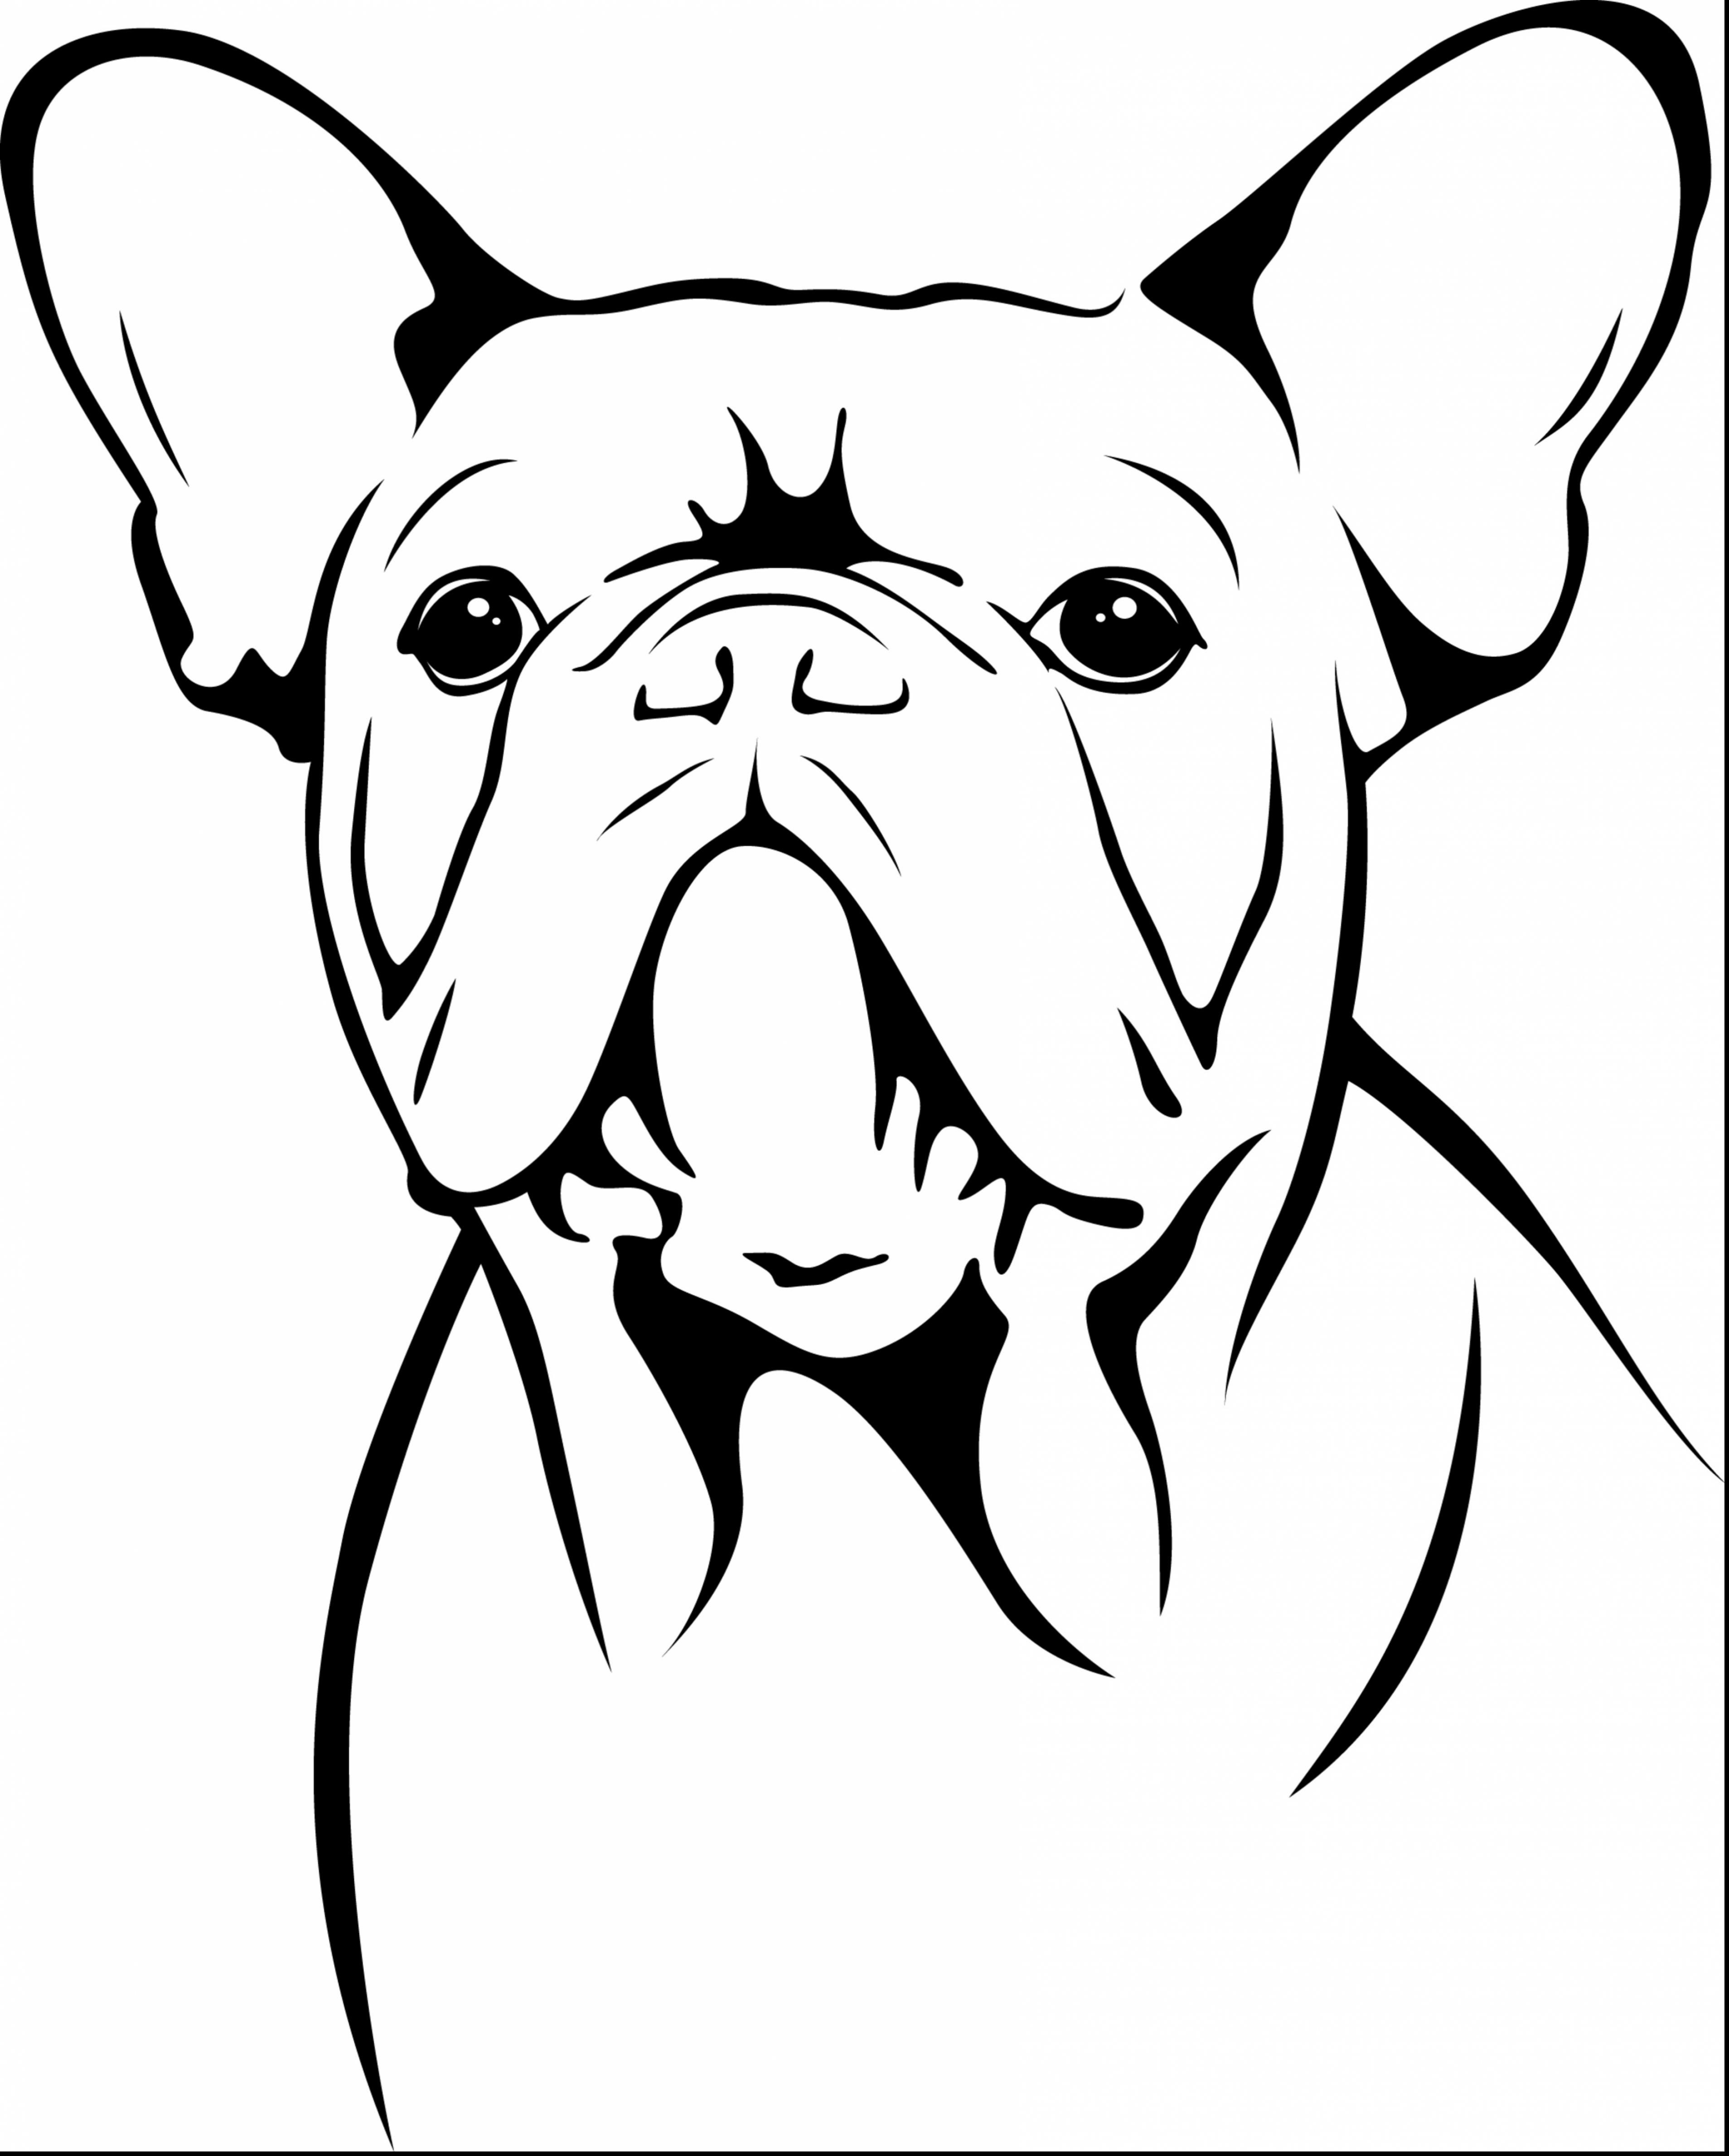 Bulldog Line Drawing At Getdrawings Com Free For Personal Use